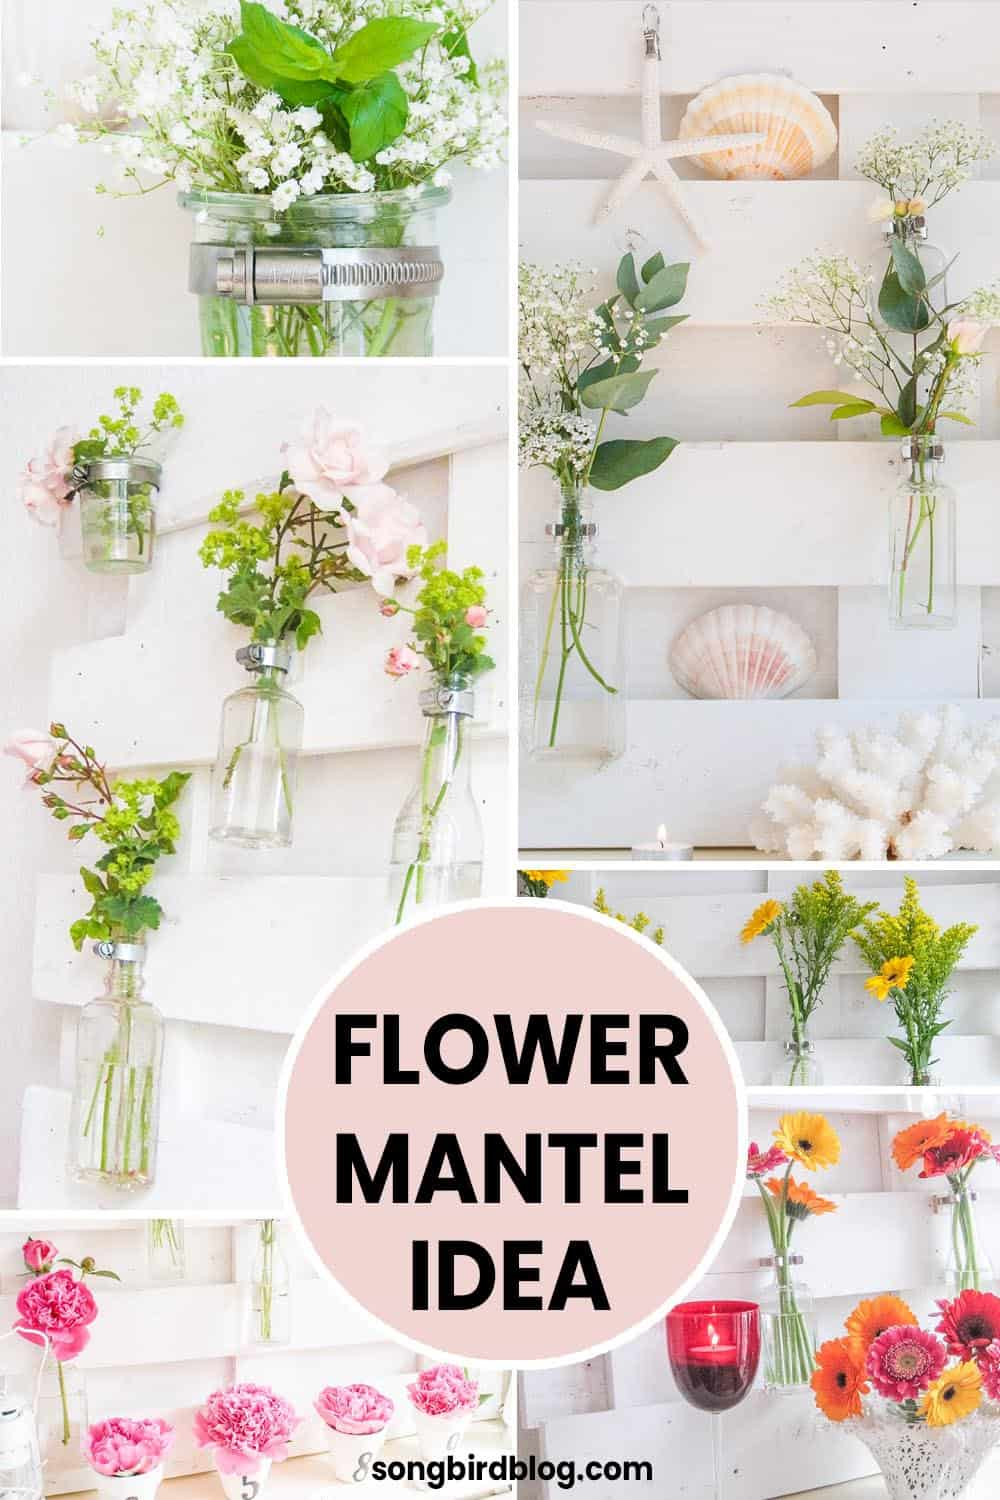 Collage image of everyday mantel decor with flowers